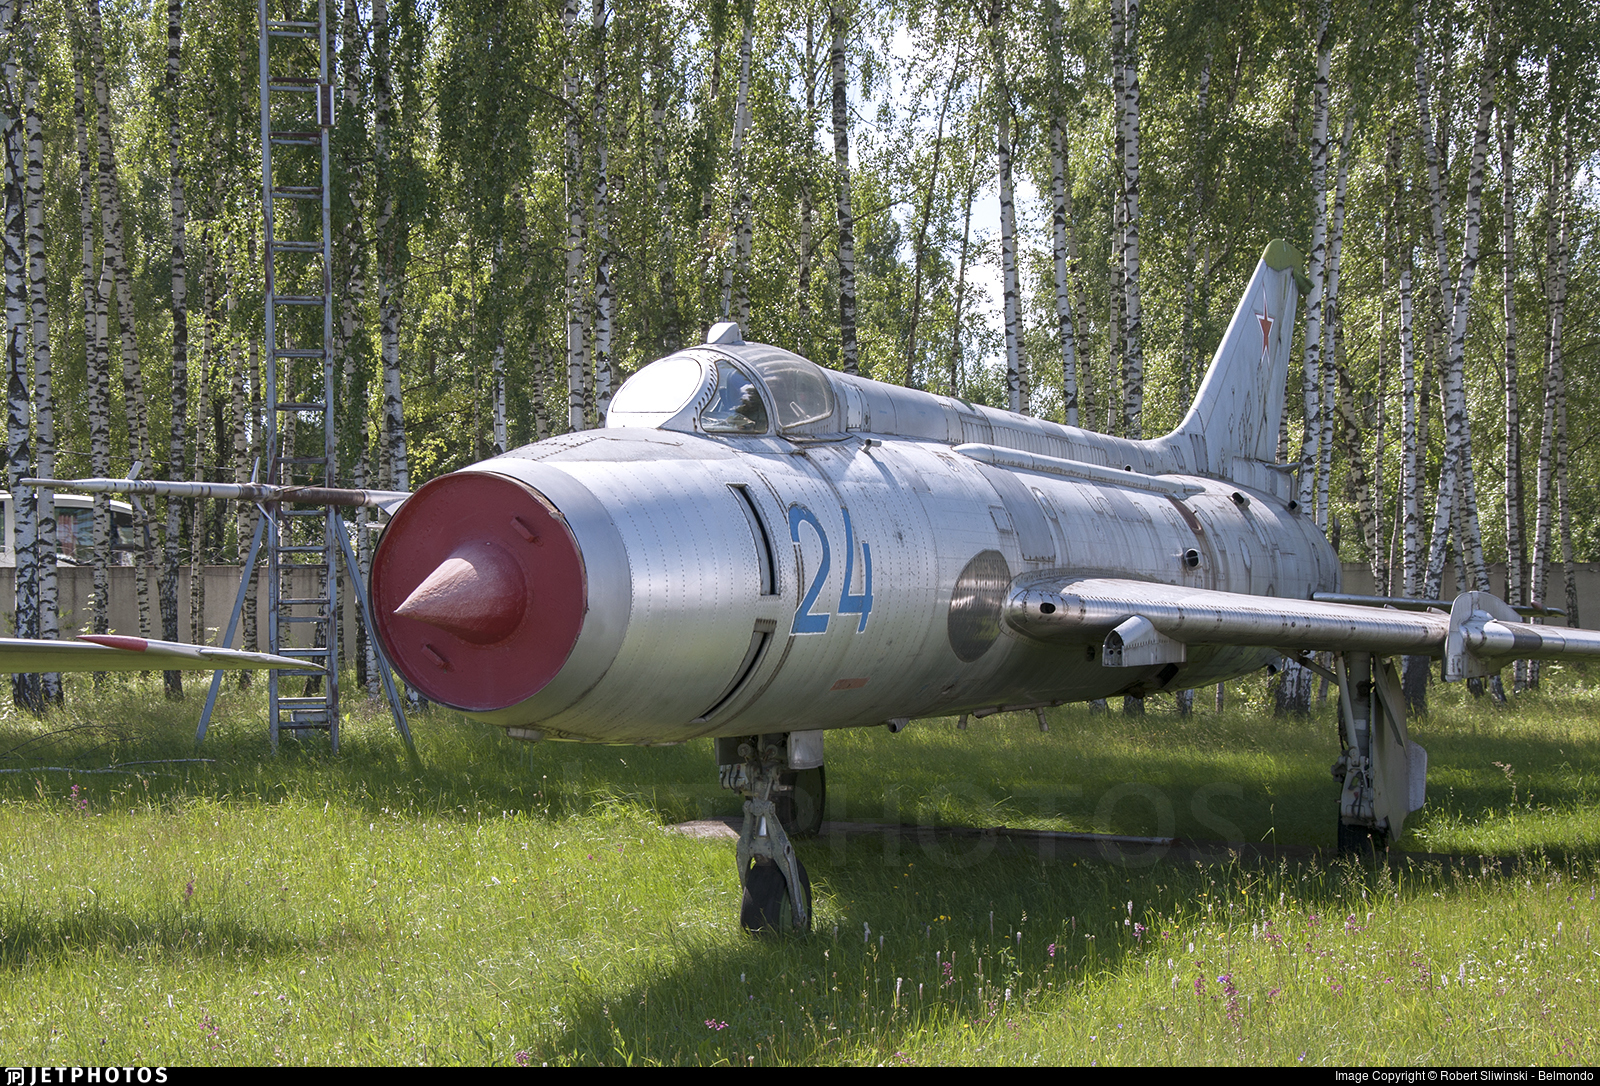 24 - Sukhoi Su-17 Fitter - Russia - Air Force